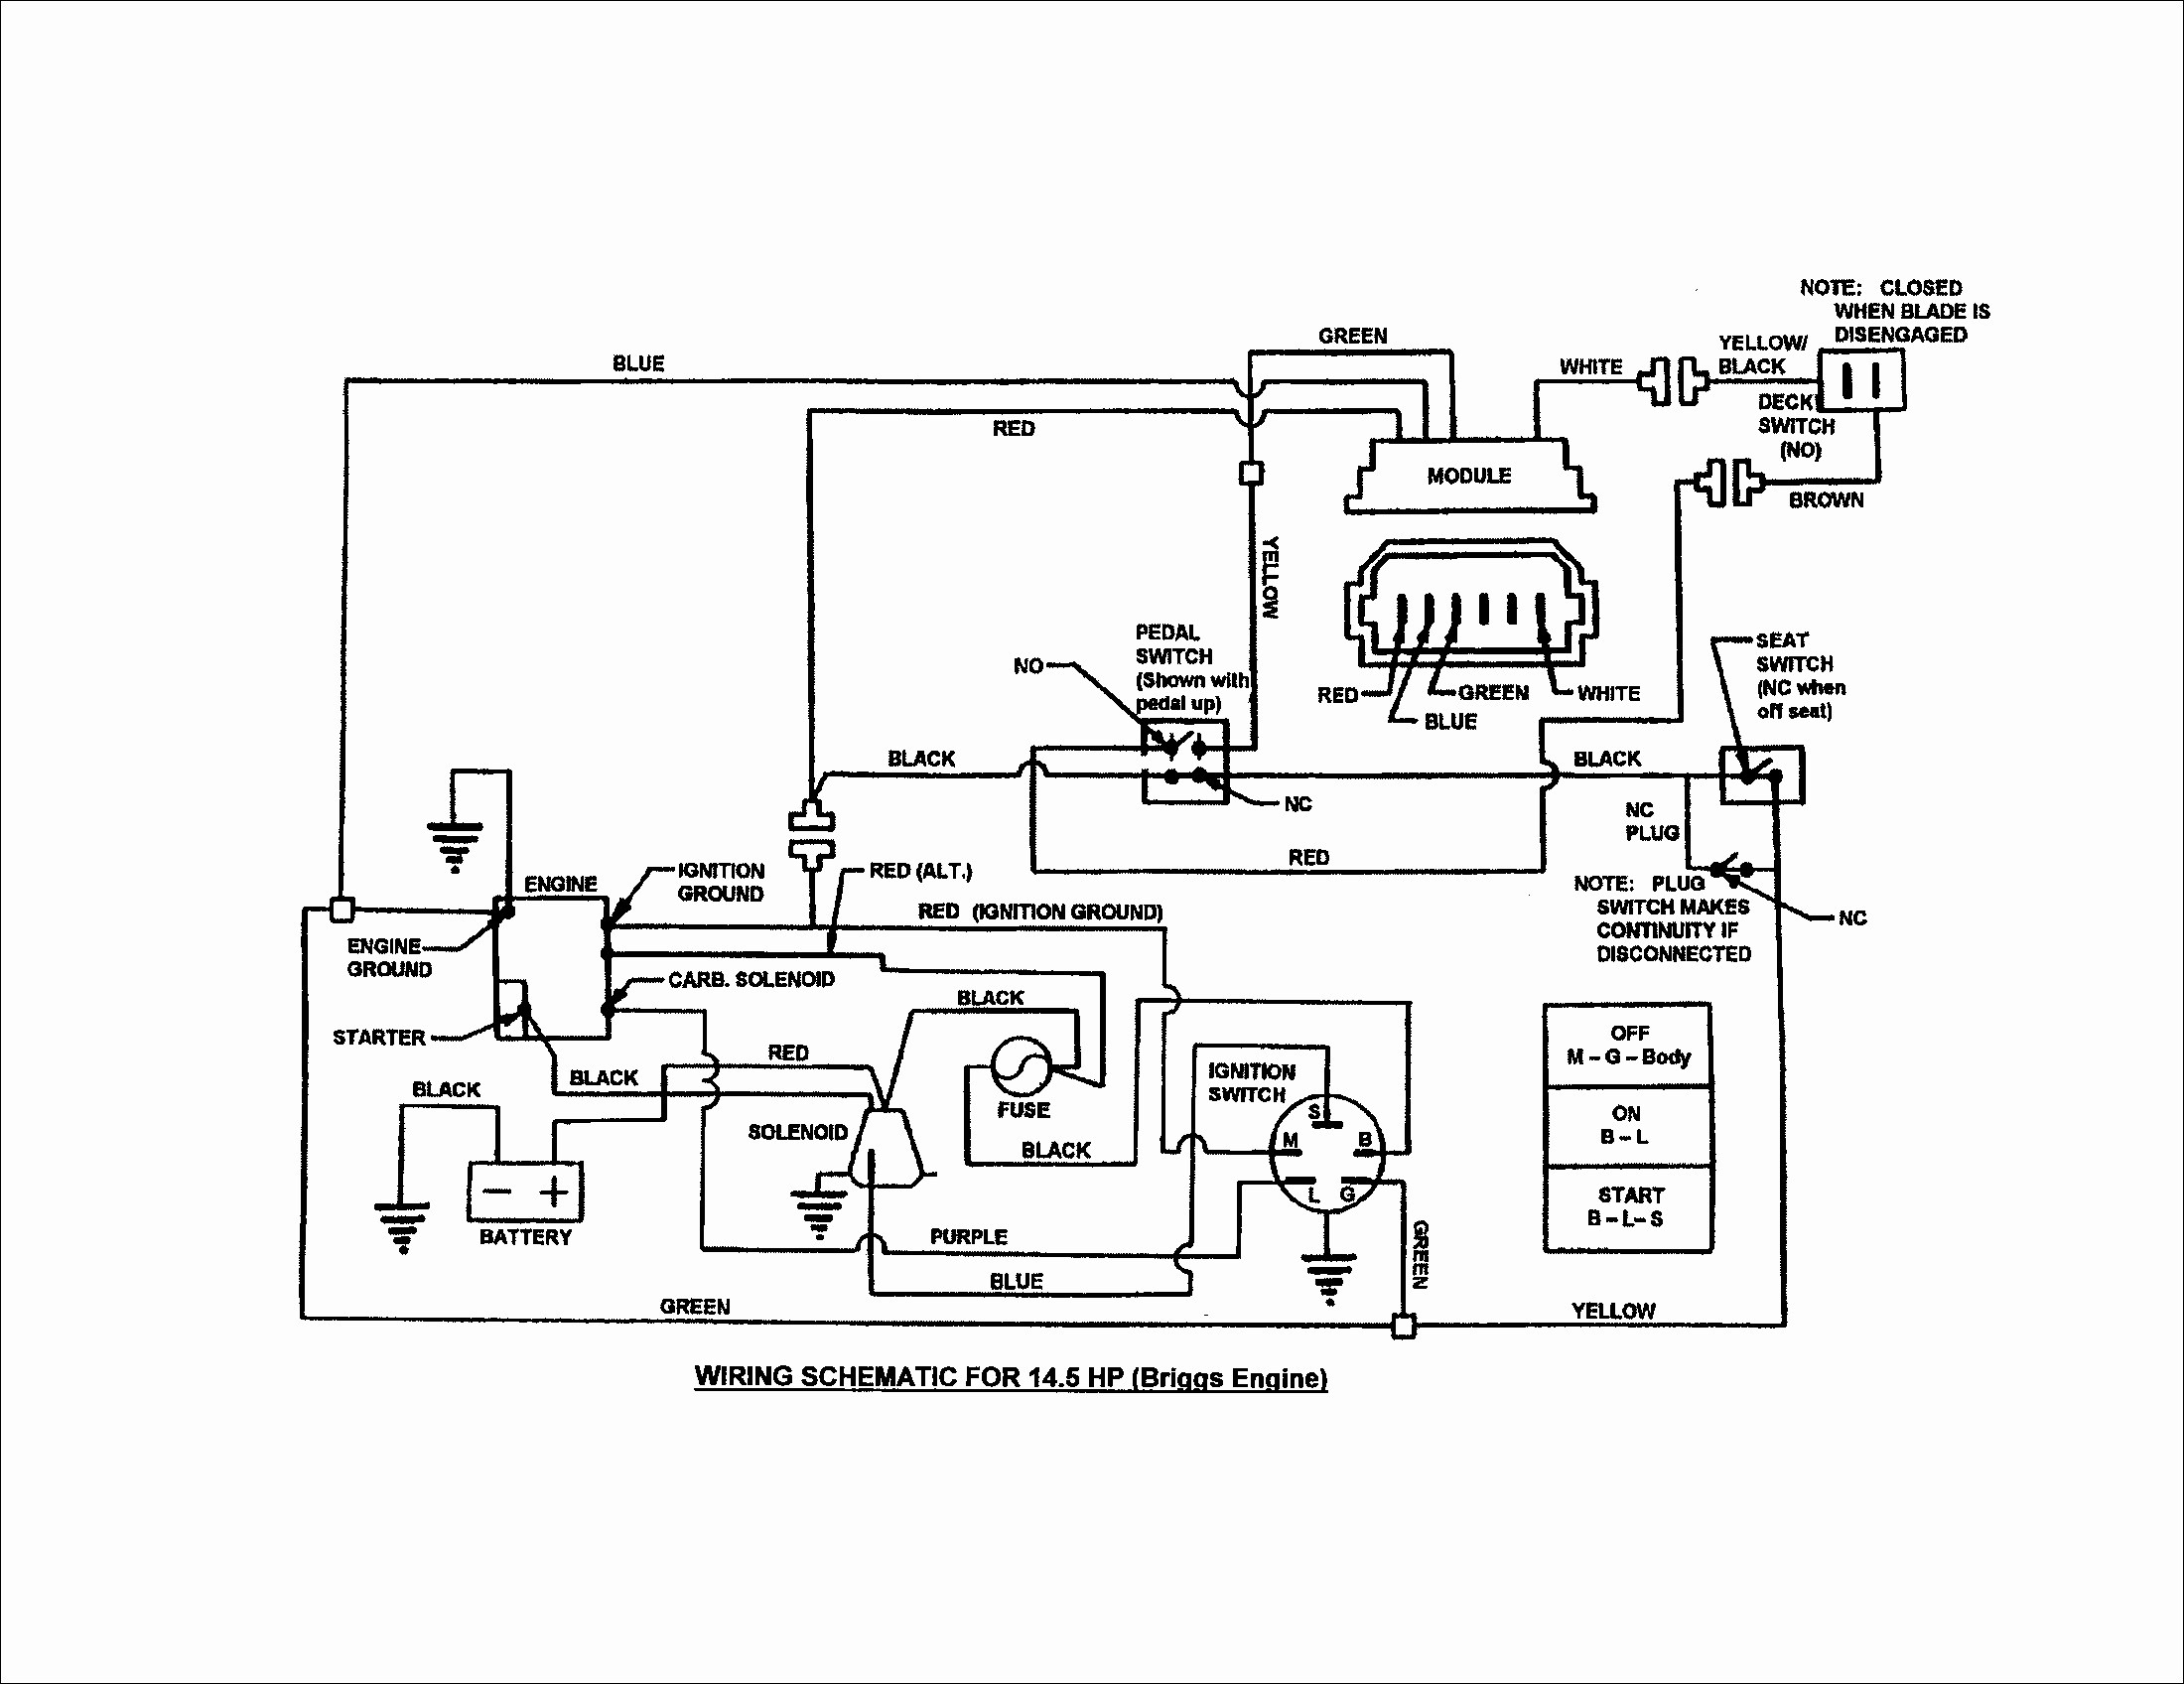 Wiring Diagram For Lt1000 | Manual E-Books - Craftsman Lt1000 Wiring Diagram